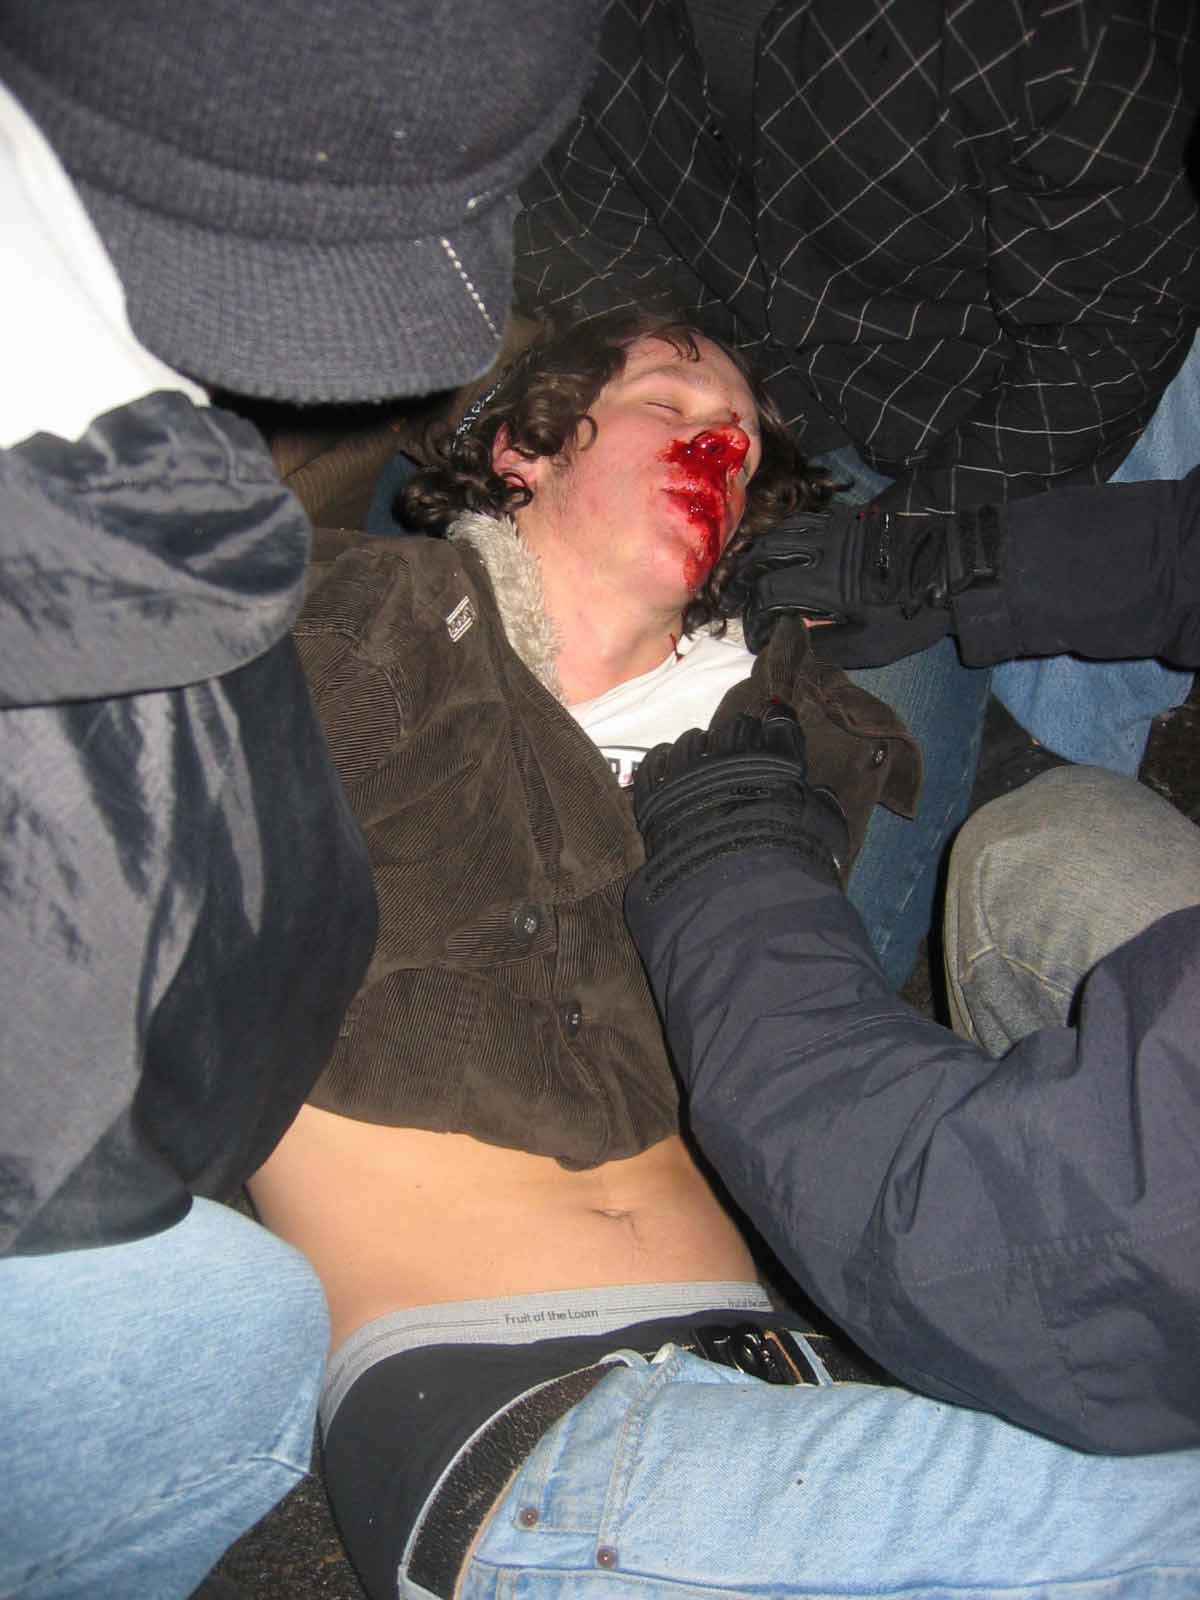 Guy got decked on new years!